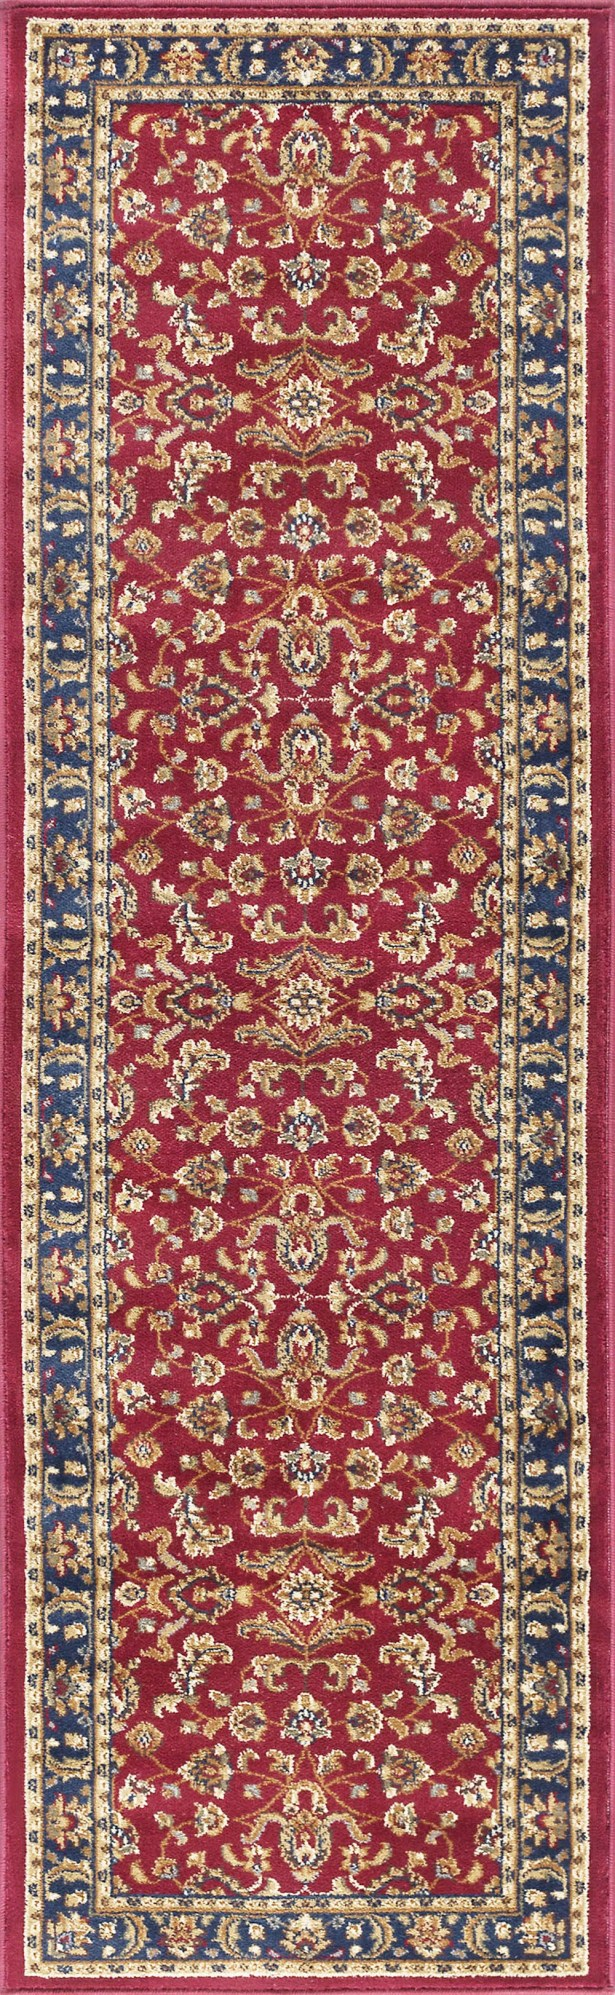 Clarence Red/Navy Blue Area Rug Rug Size: 2'3'' x 10'